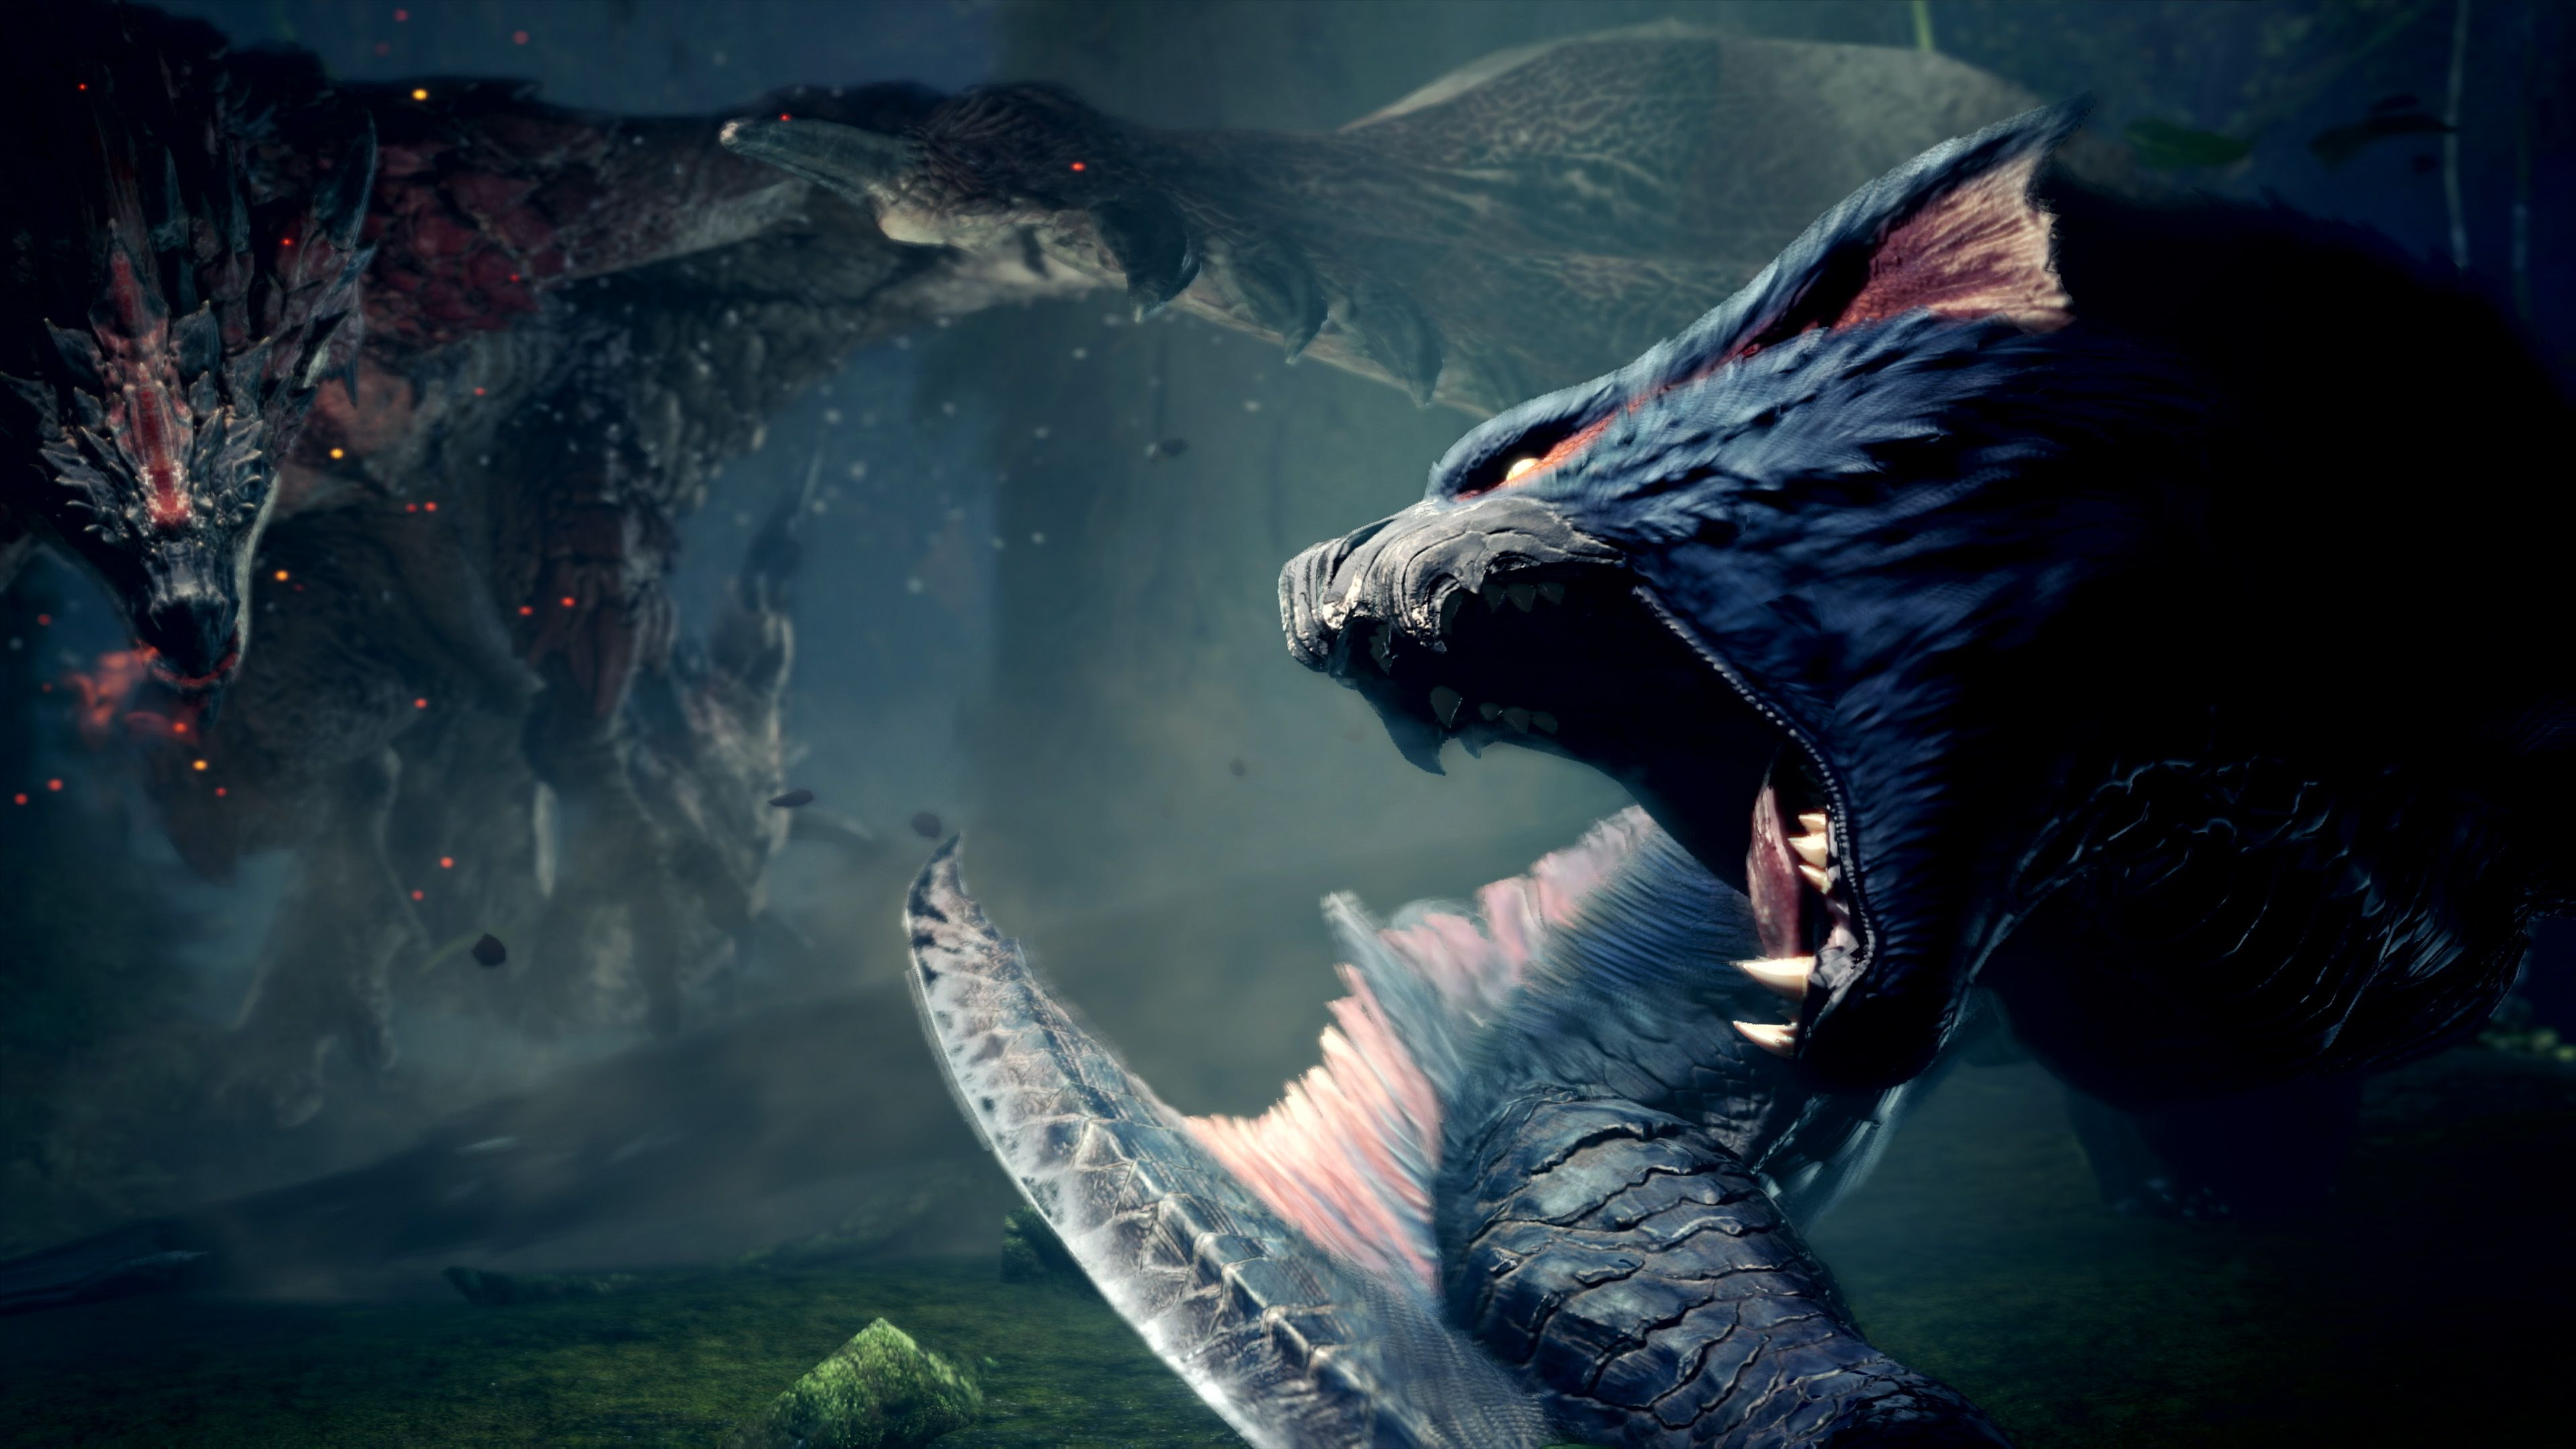 /how-to-find-the-monster-hunter-world-mhw-wyvern-gem-and-how-to-use-it-z11b33cr feature image